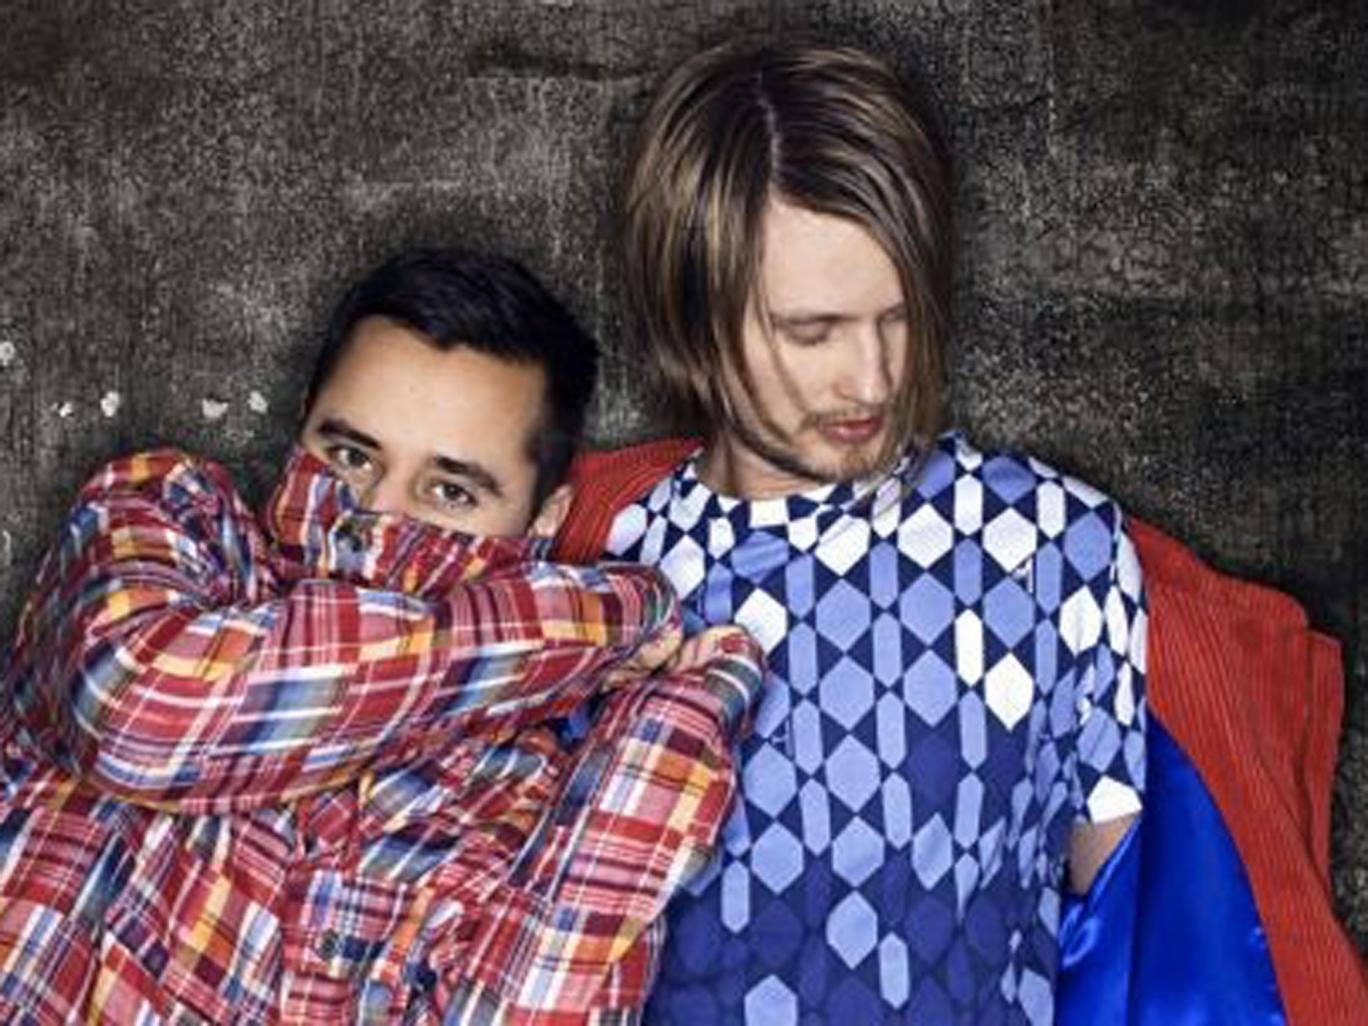 Royksopp continue the 'Late Night Tales' project